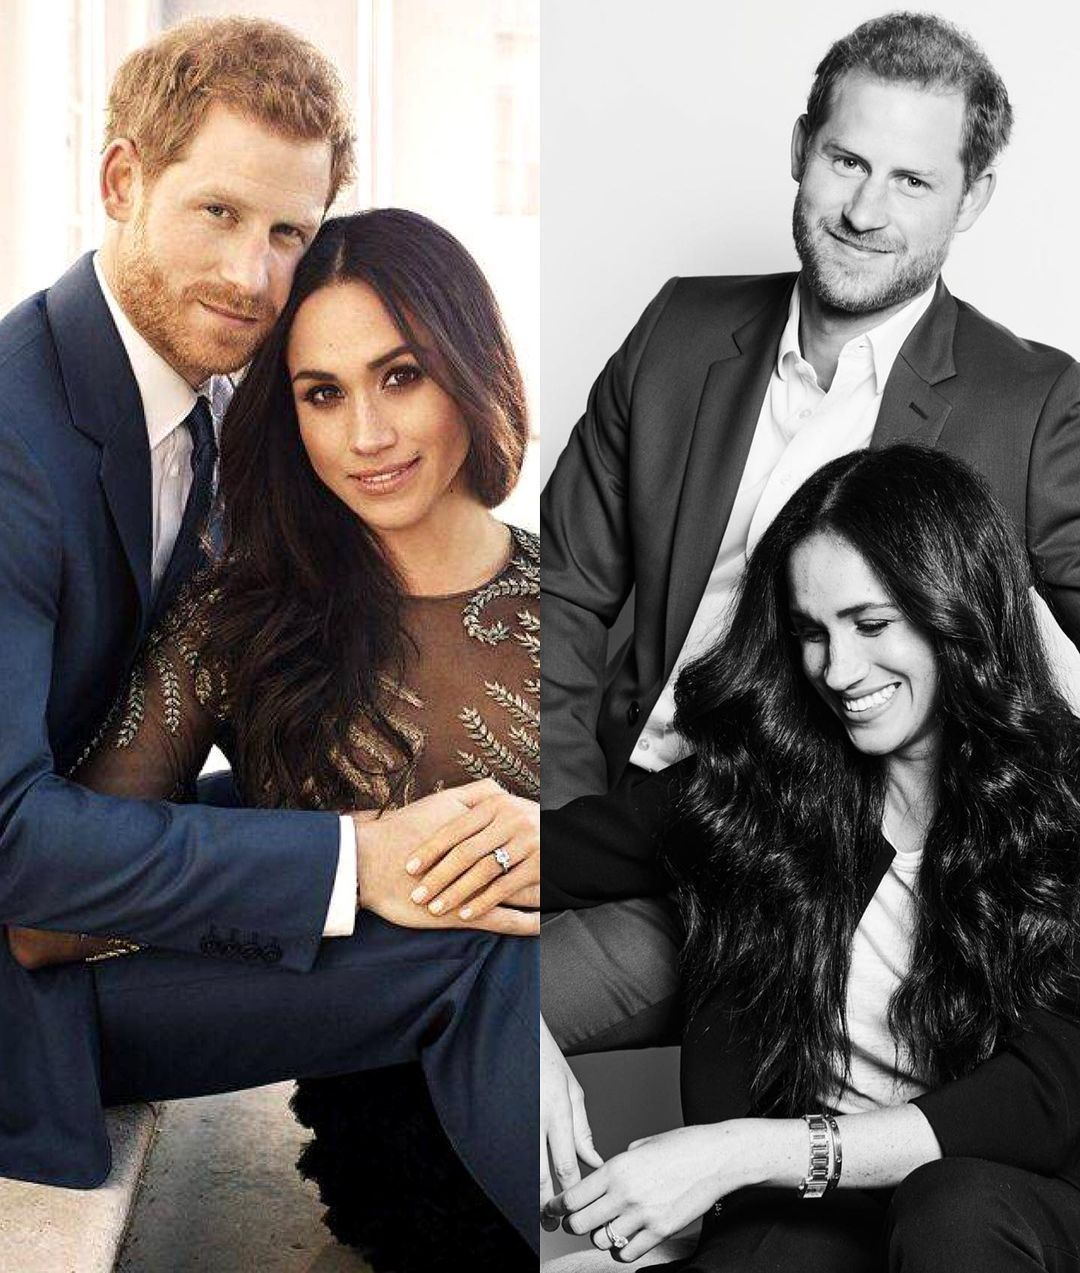 Meghan Fan Page On Instagram 4 Years Together 2 Years Married Alexilubomirski Prince Harry And Megan Prince Harry And Meghan Celebrity Couples